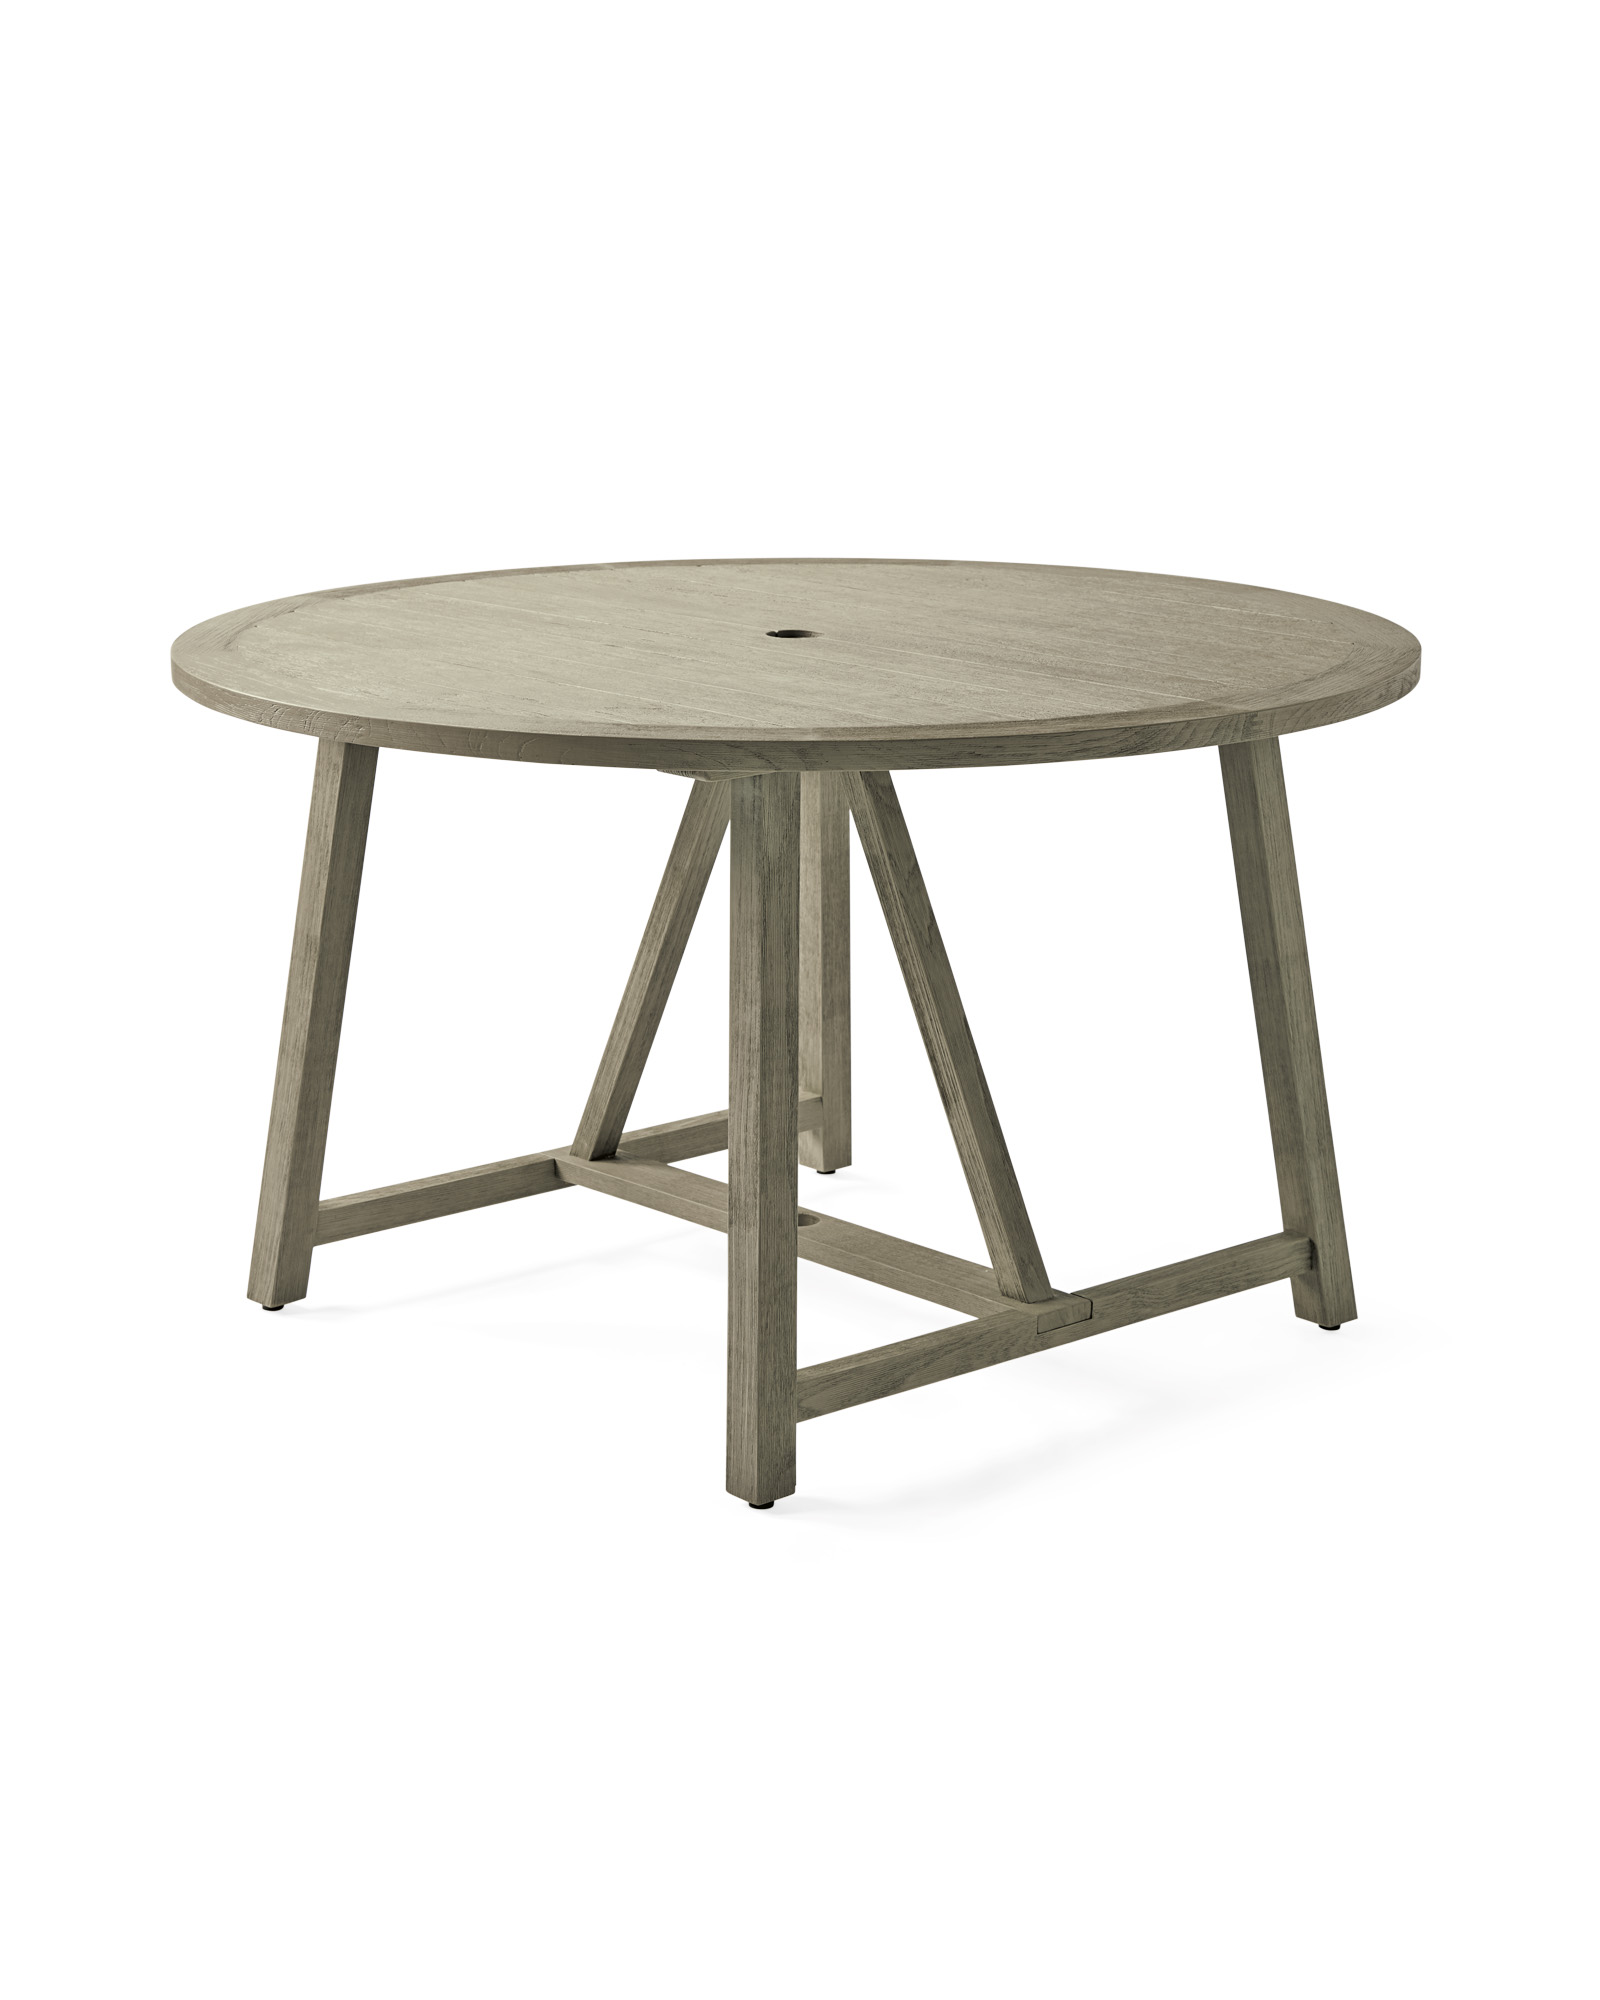 Crosby Teak Round Dining Table - Vintage Grey,